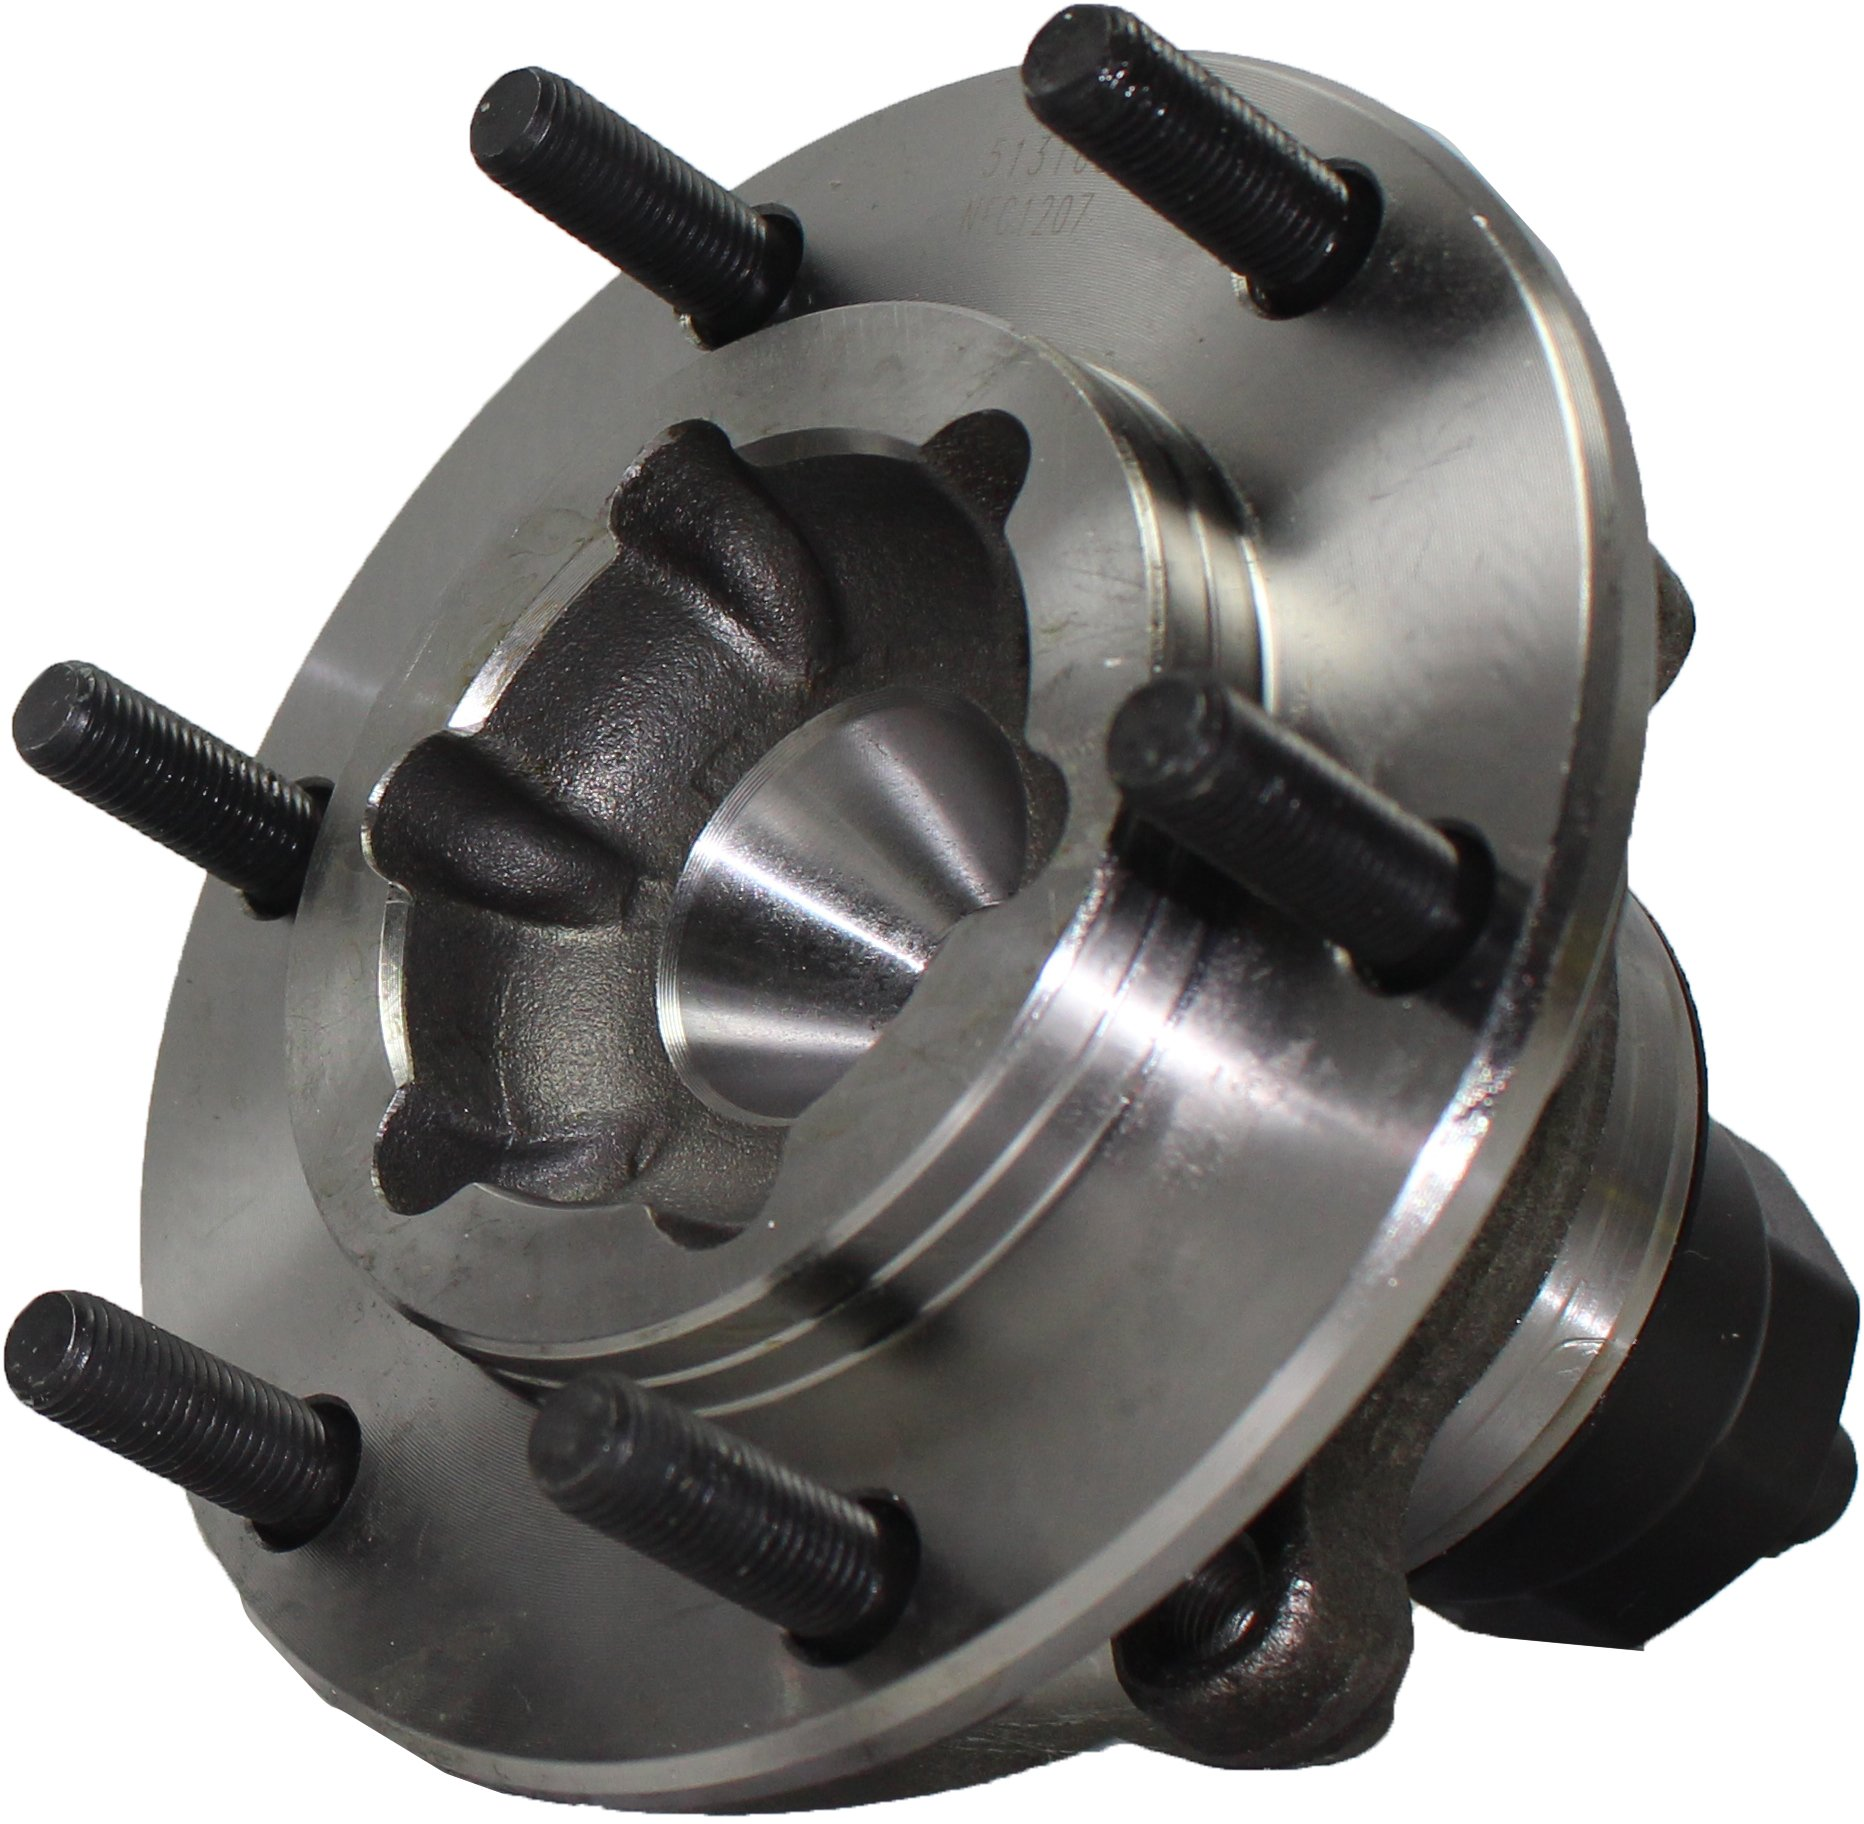 Detroit Axle - Front Wheel Bearing & Hub Assembly Driver or Passenger Side fits 2002-2004 Isuzu Axiom 2WD - [02-04 Rodeo 2wd] - 02-03 Rodeo Sport 2wd - [02 Honda Passport 2WD] by Detroit Axle (Image #2)